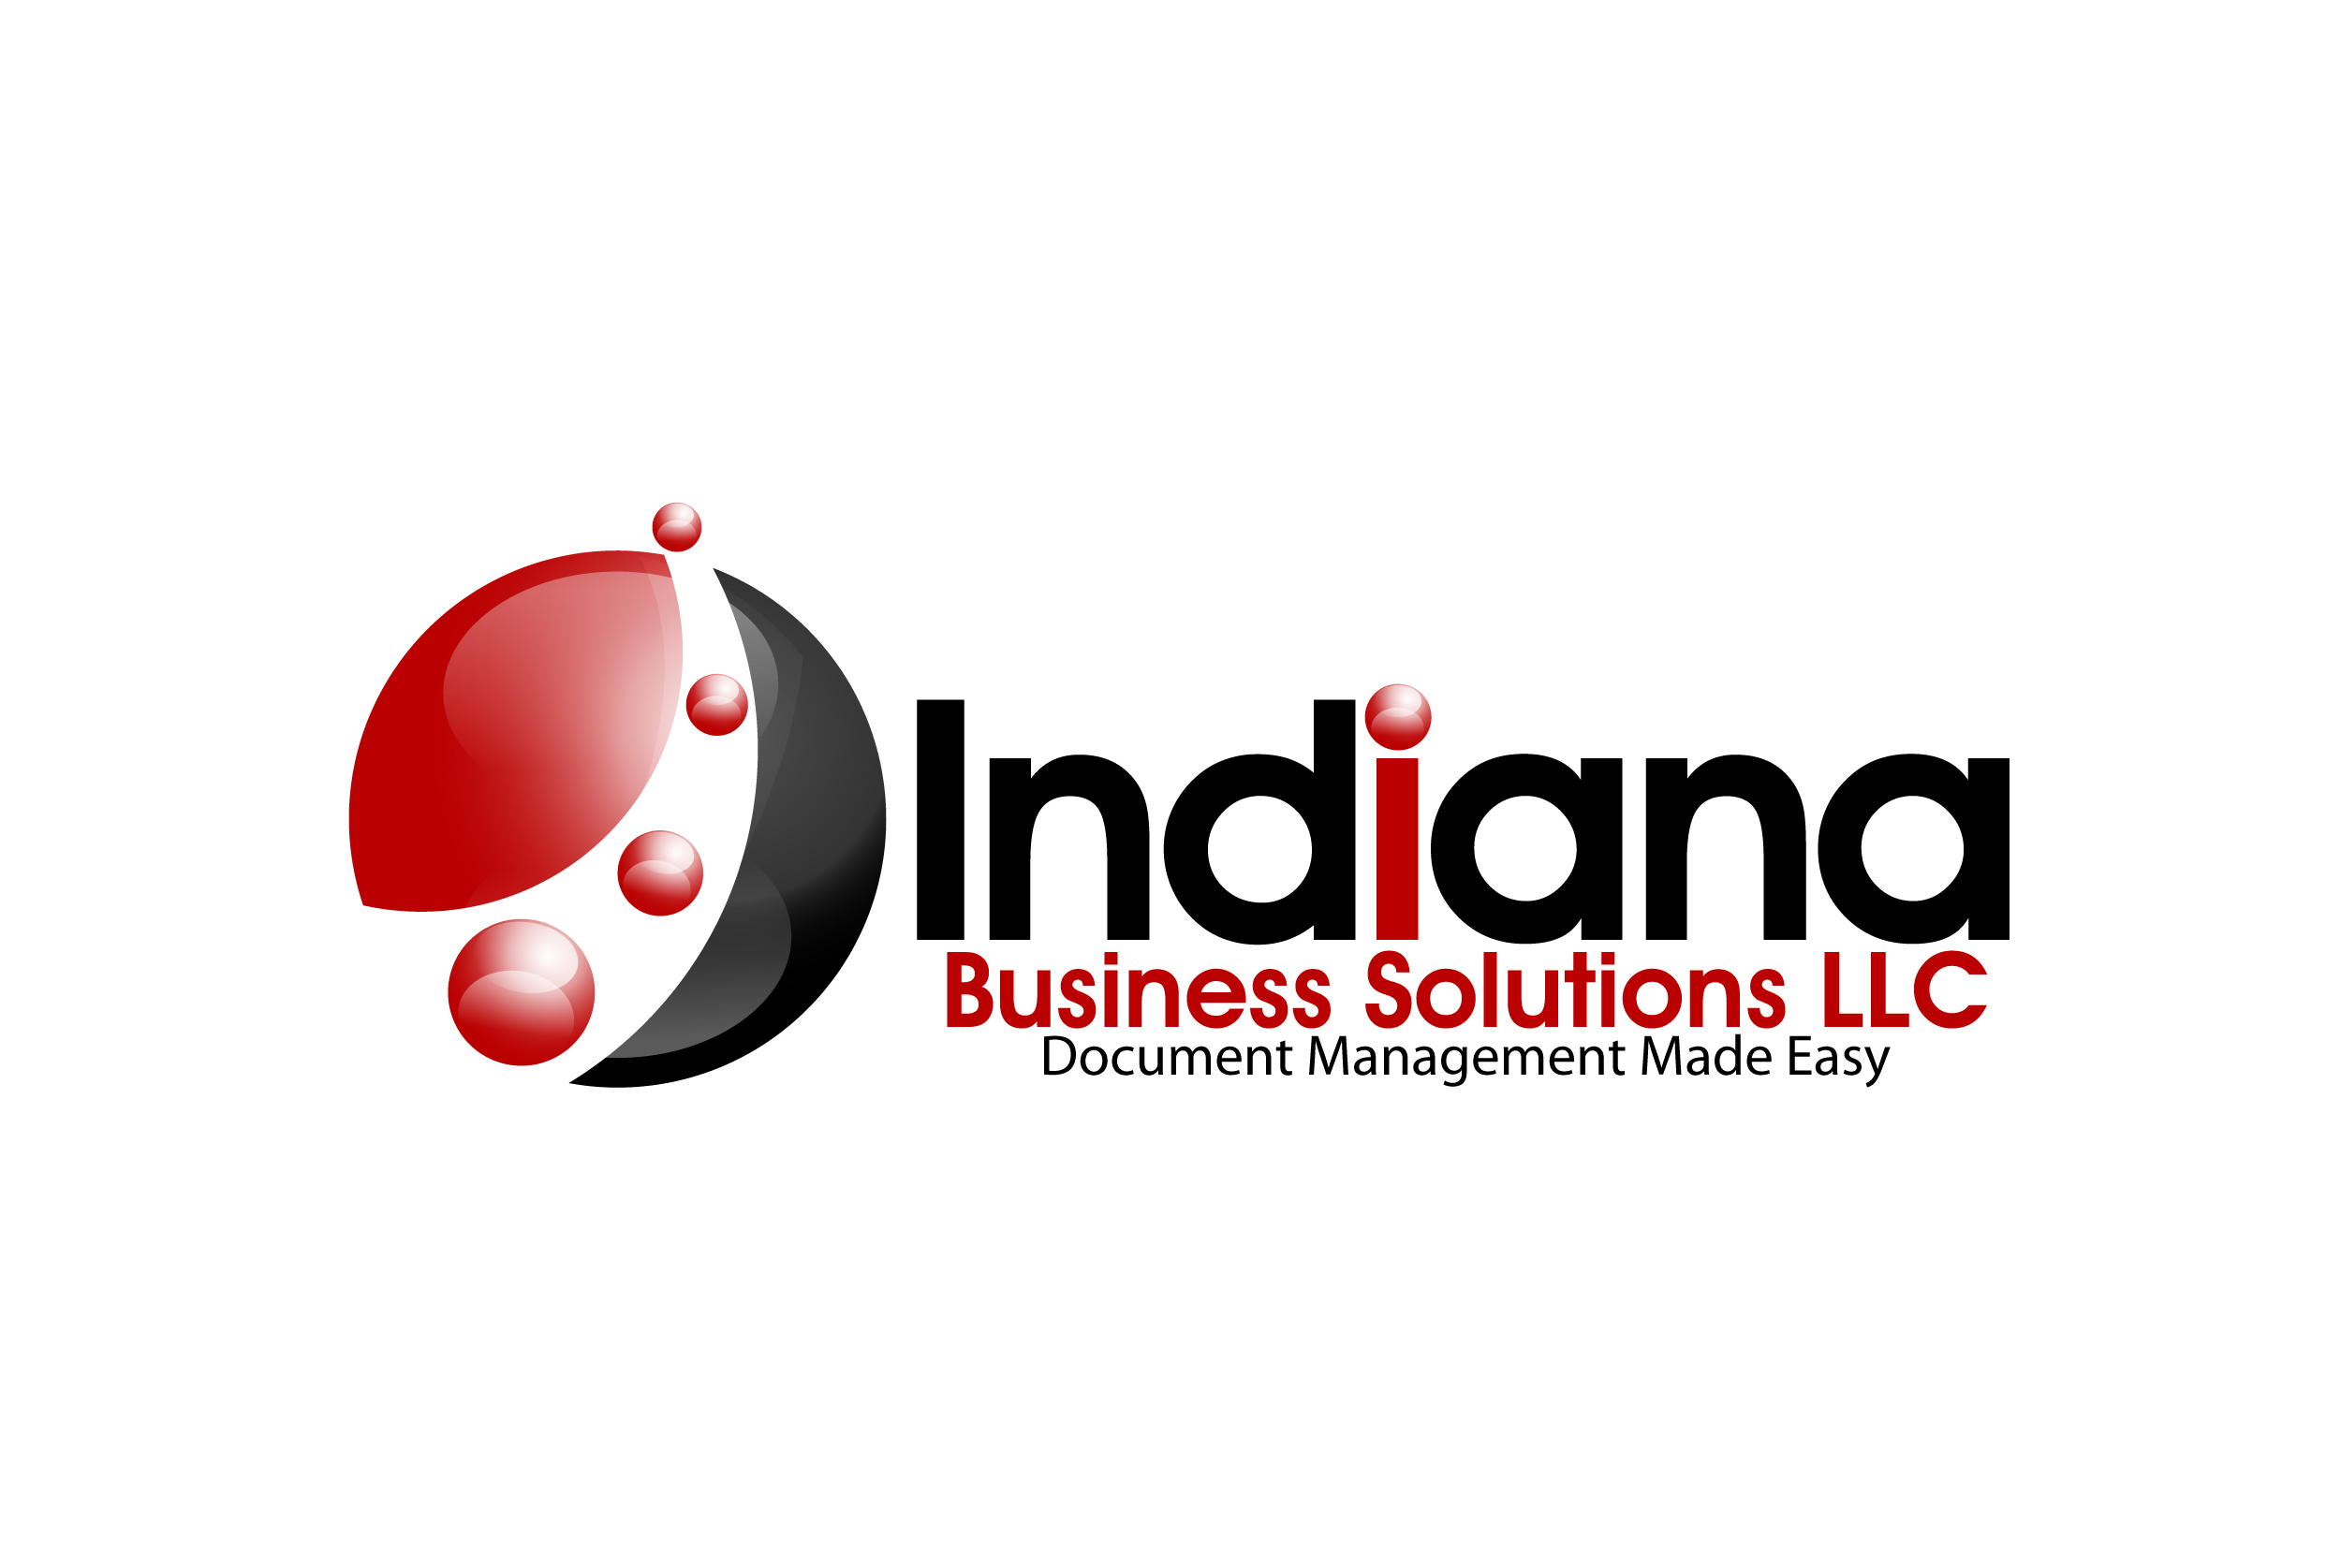 Indiana Business Solutions